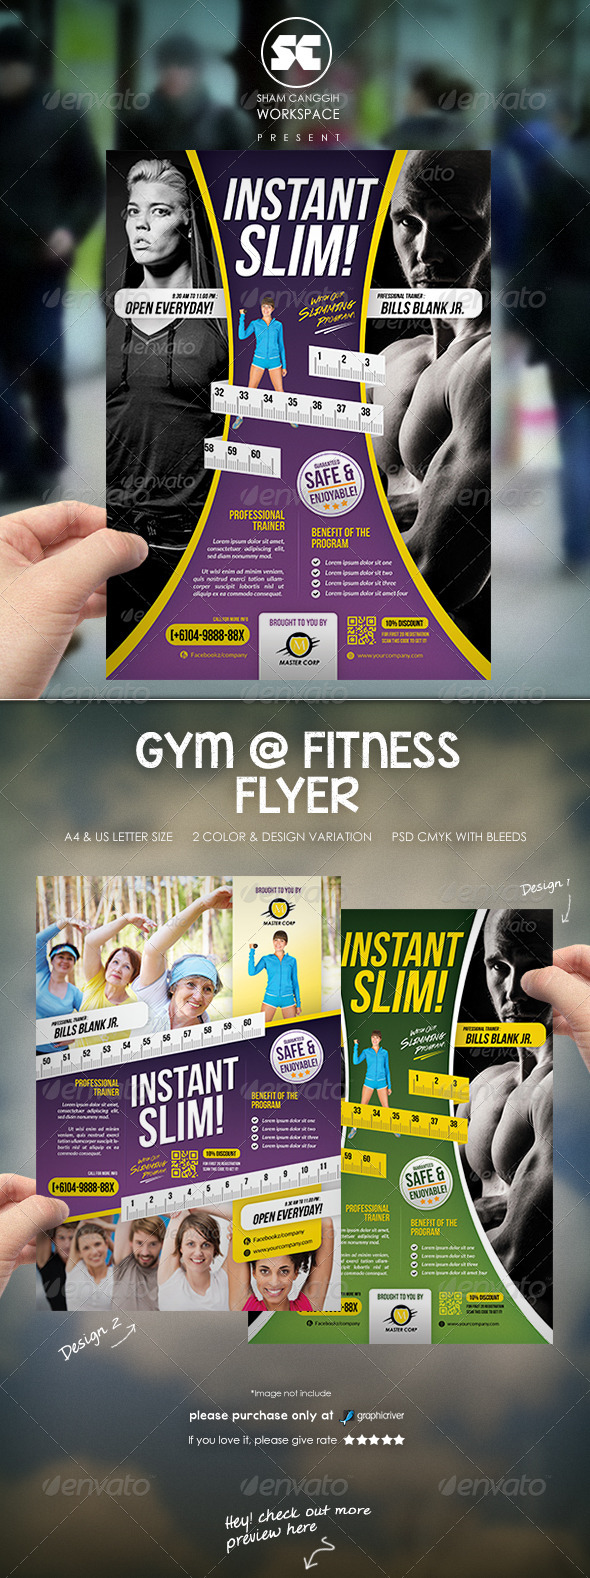 Fitness And Gym Flyer / Magazine Ads